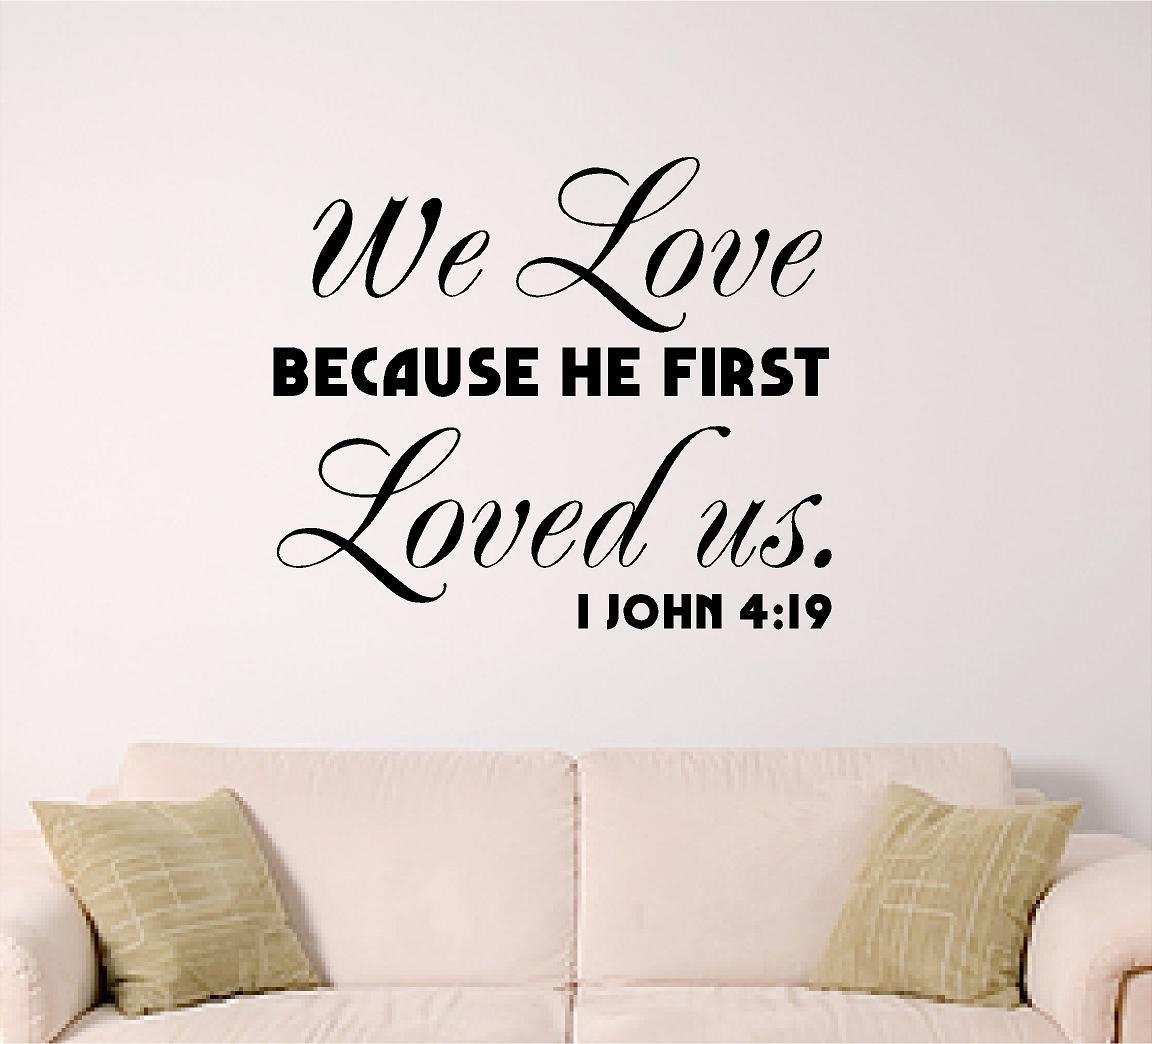 Bible Verse Wall Decal We Love Because He First Loved Us (Image 8 of 20)